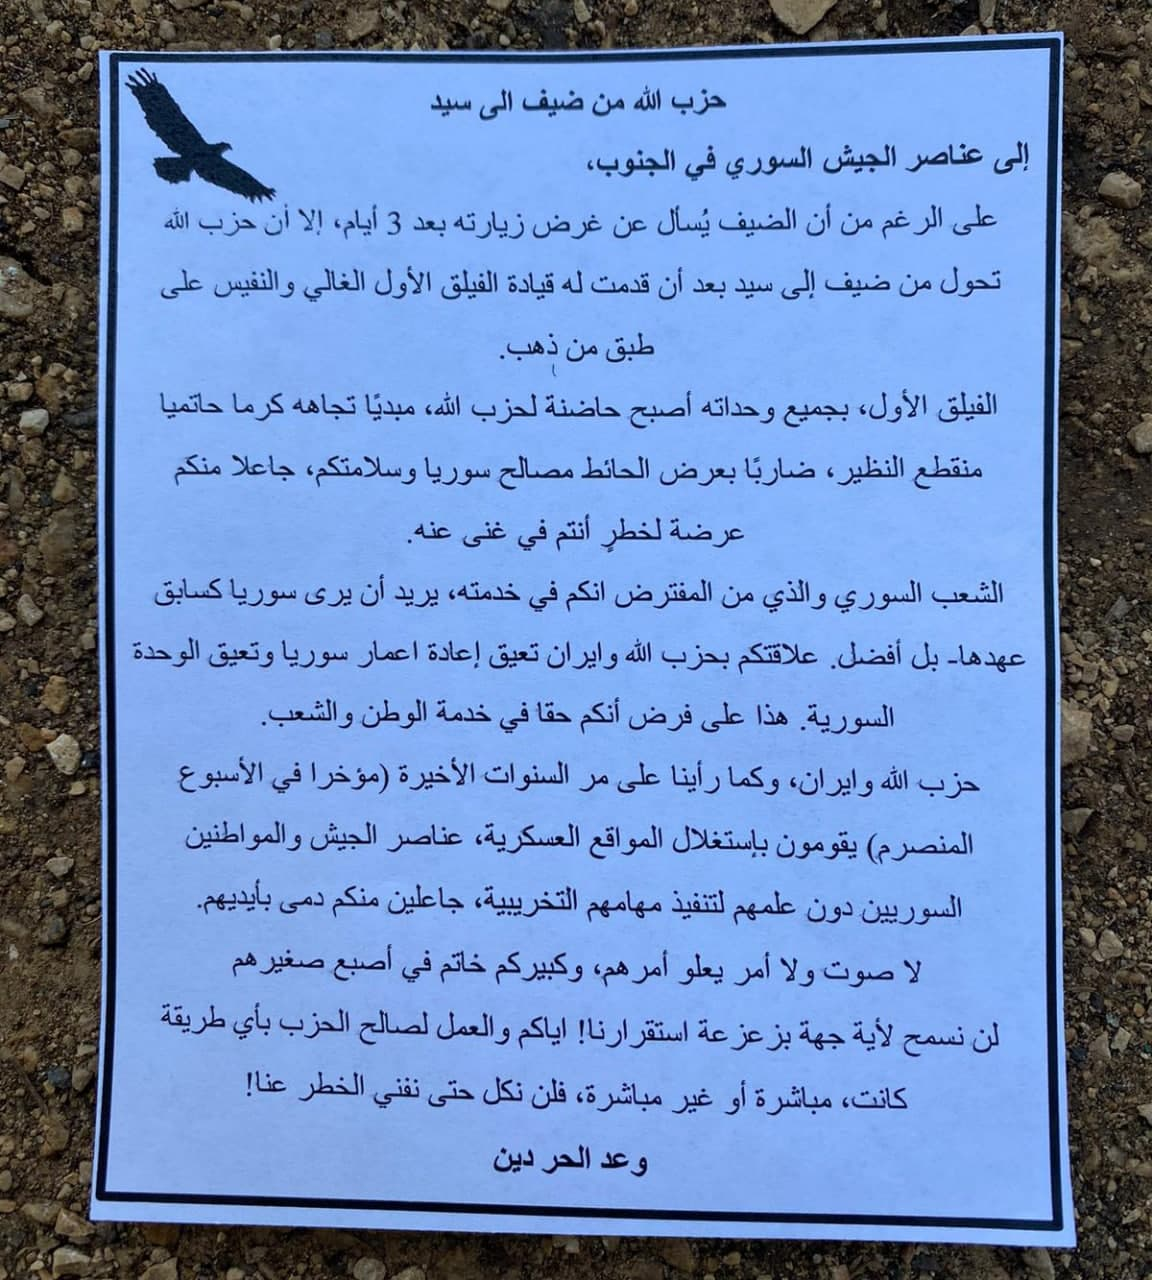 Israel Threatened Syrian Army 1st Corps In leaflets Dropped Over Al-Quneitra